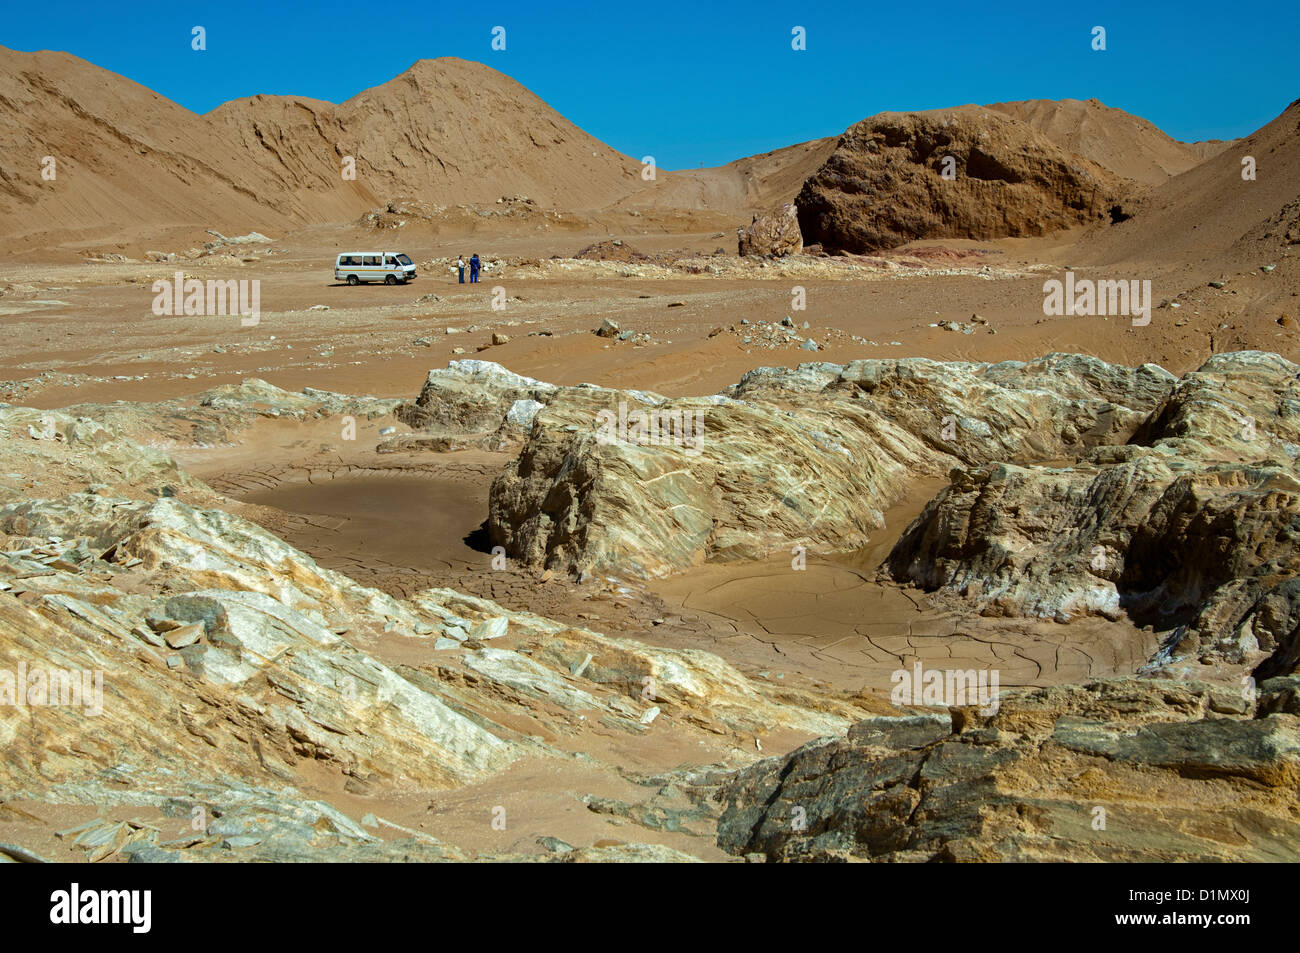 Mini-bus as comparision of size in a depleted diamond deposit, De Beers Namaqualand Mines, Kleinzee, Namaqualand, - Stock Image